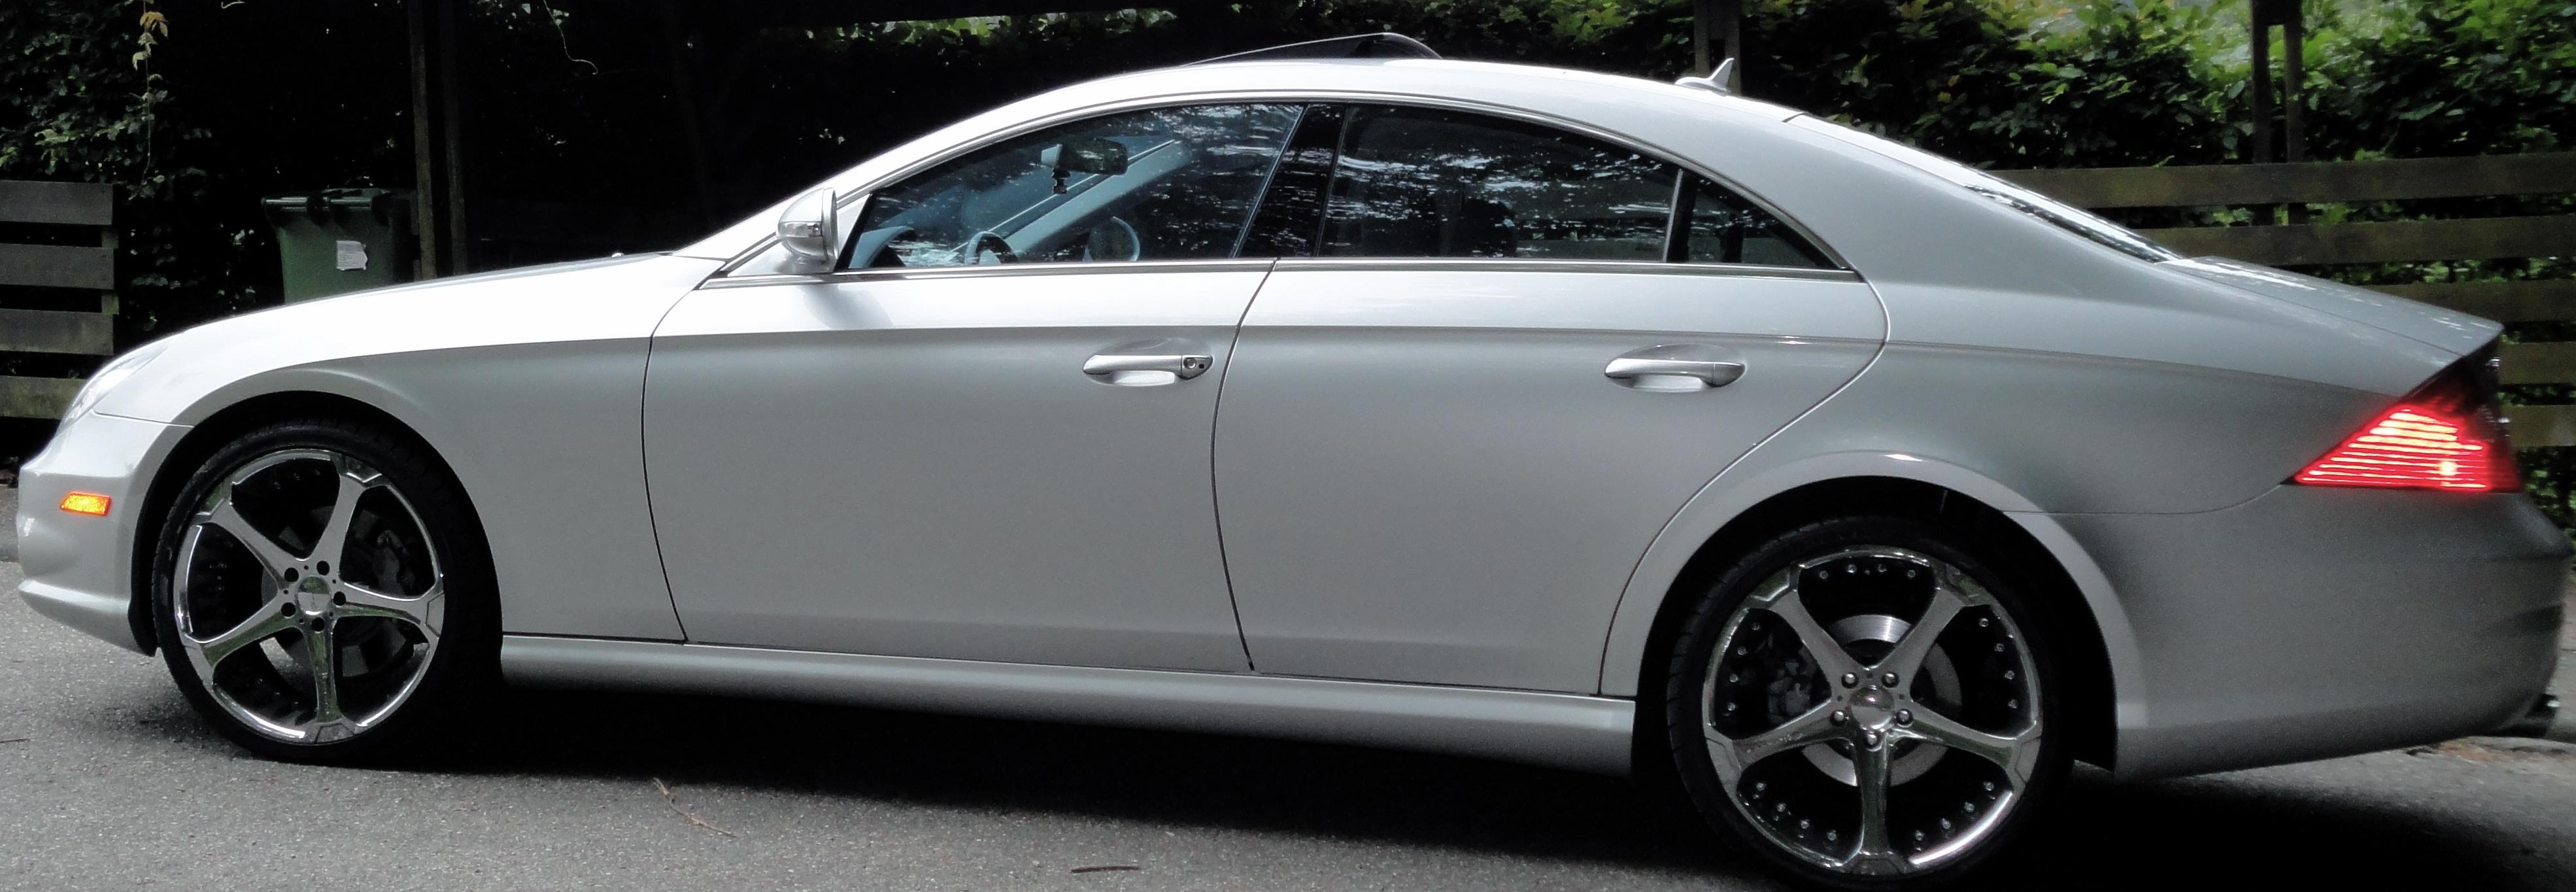 2007 mercedes benz cls class information and photos